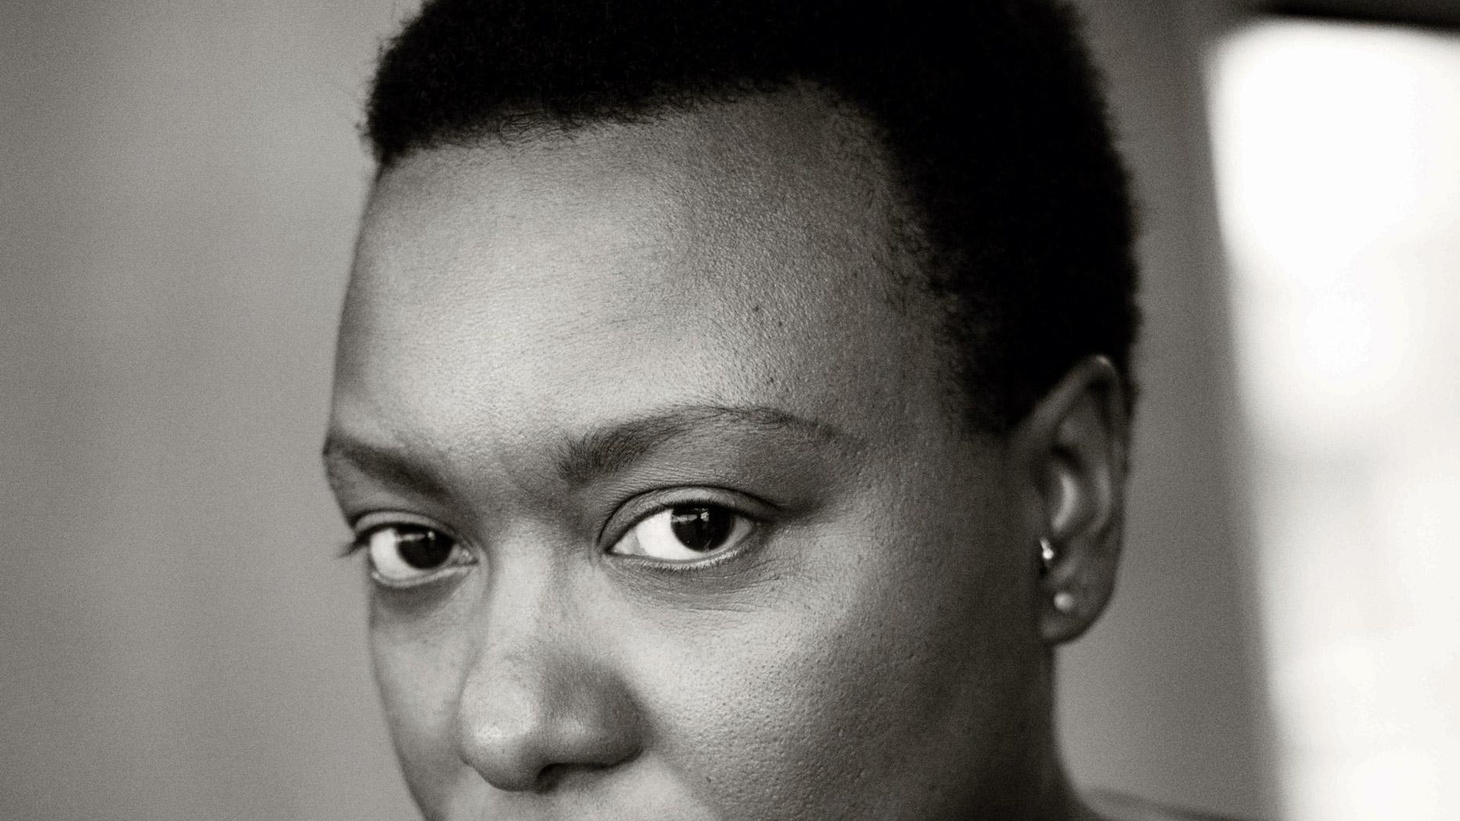 Me'shell Ndegeocello's moody bass playing and signature vocals